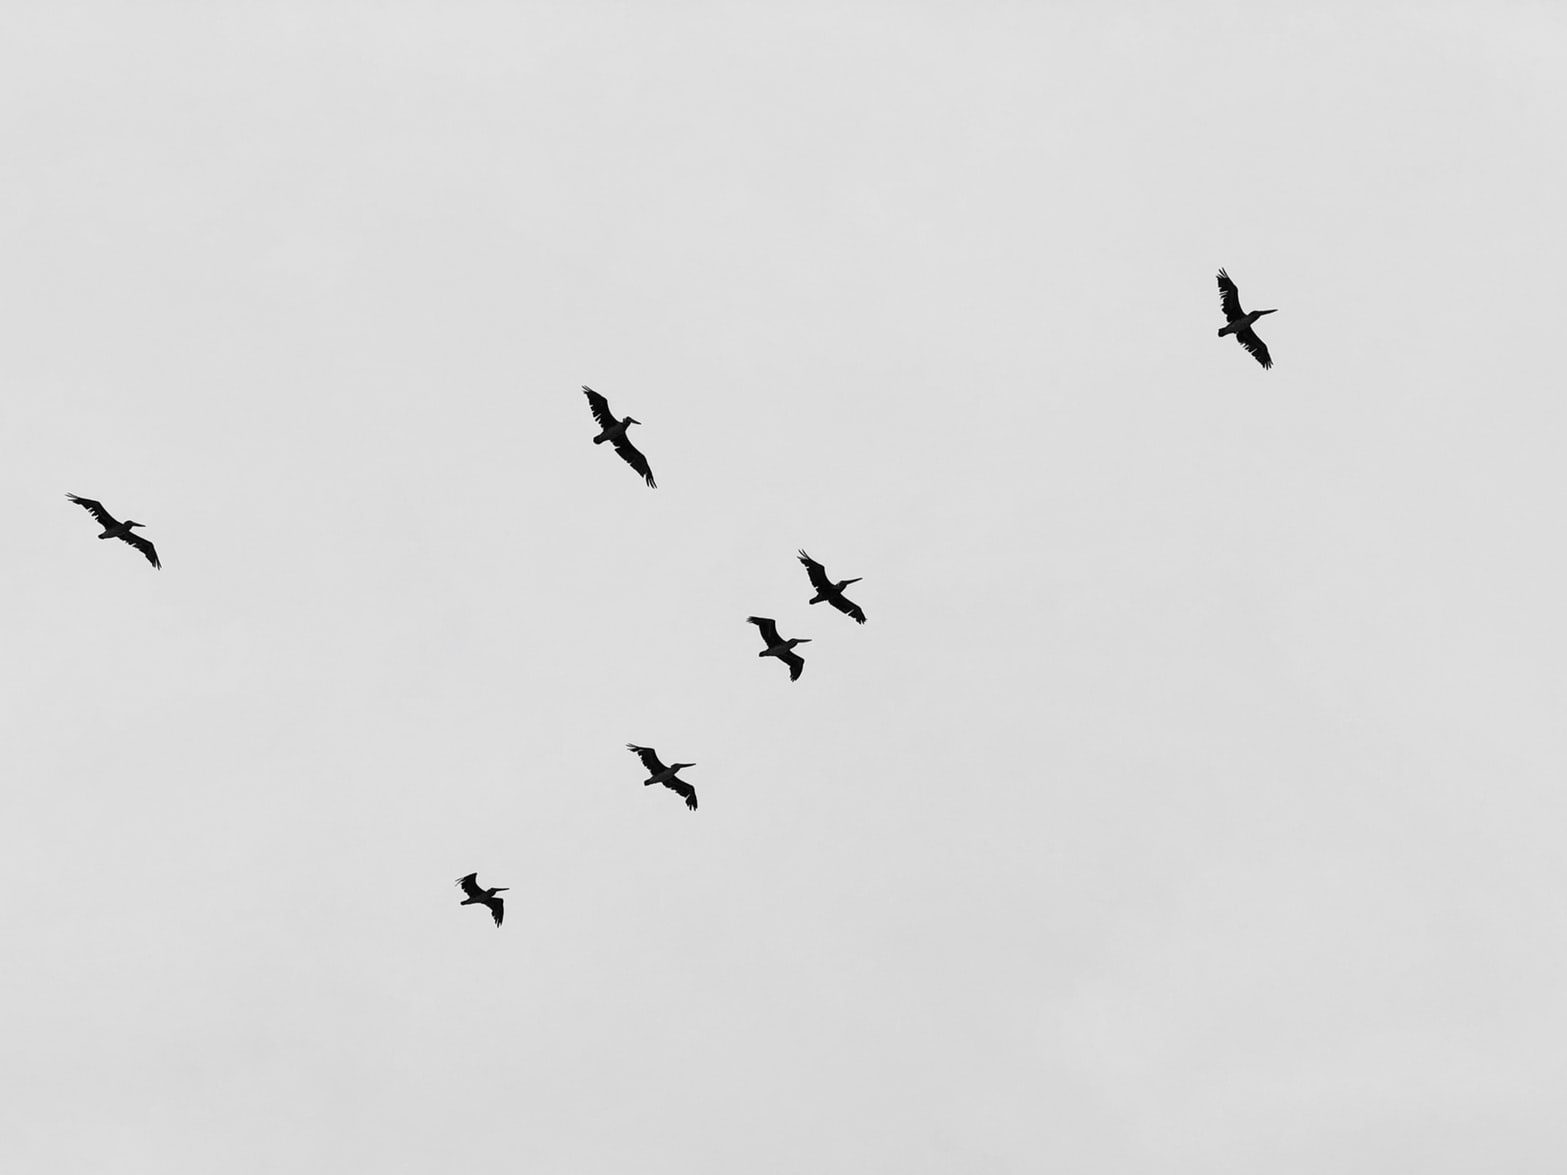 grayscale birds flying in a group